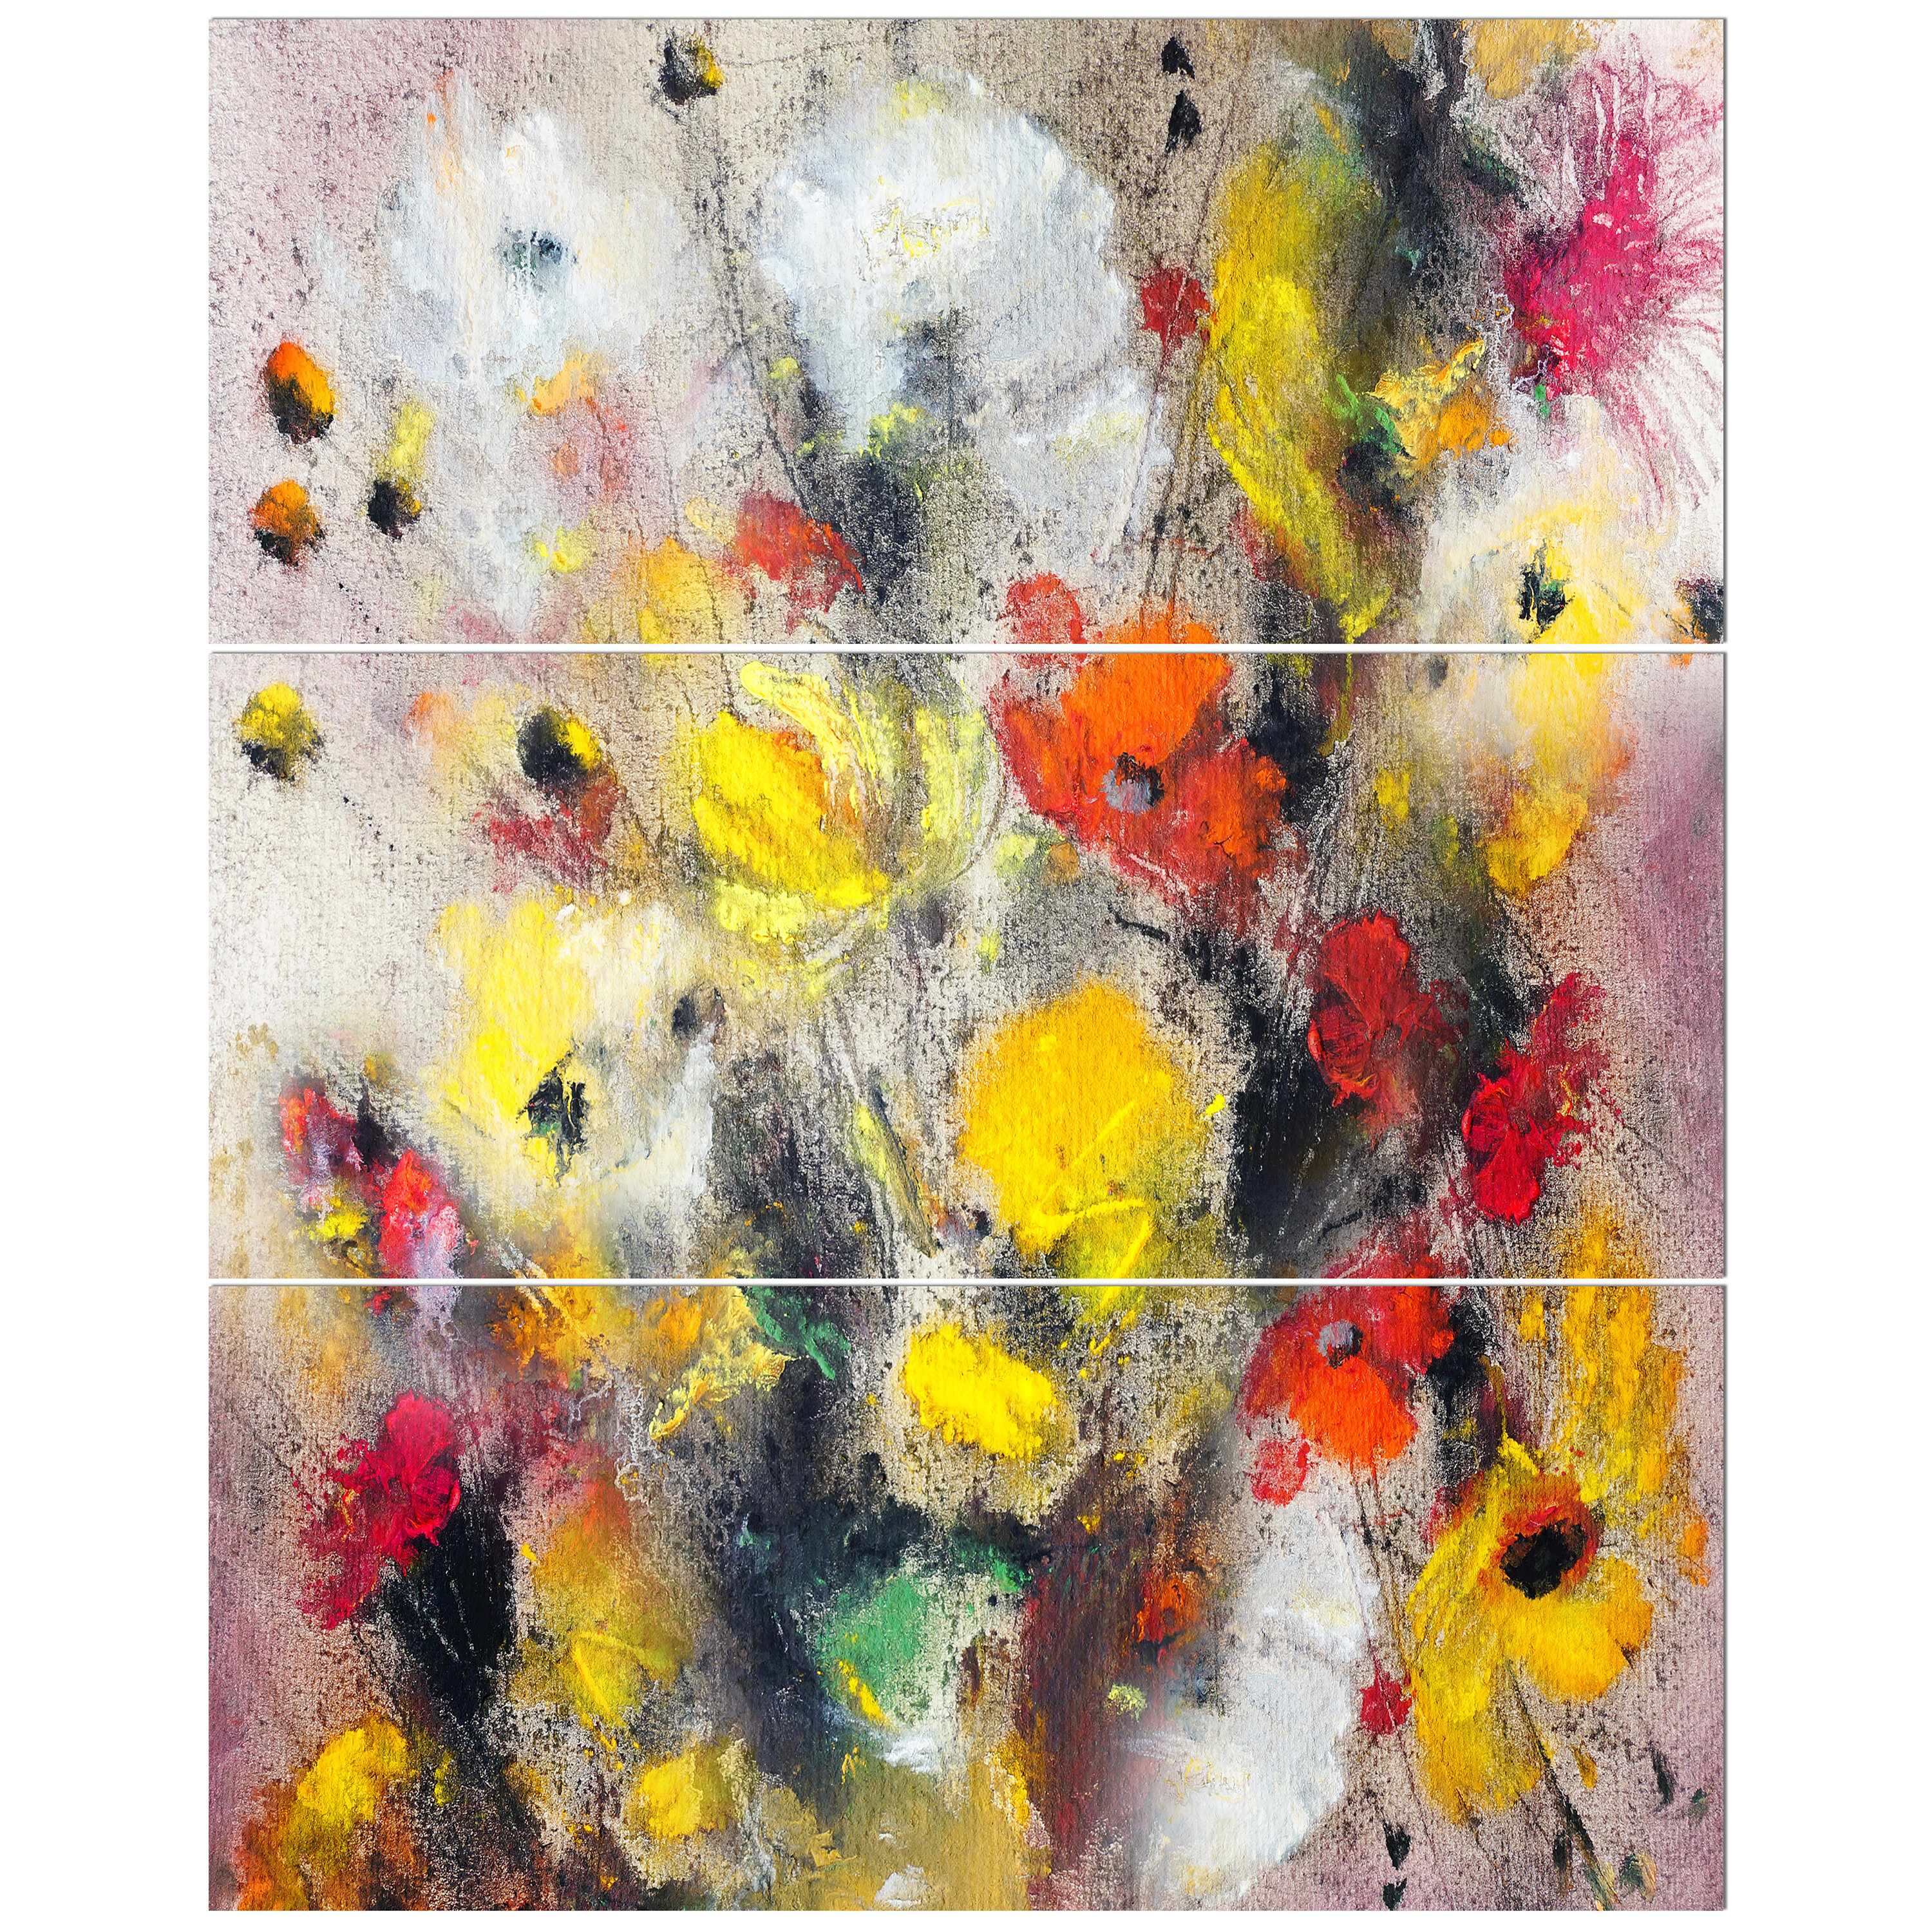 Bouquet Of Flowers In Abstract Painting Oil Painting Print Multi Piece Image On Wrapped Canvas